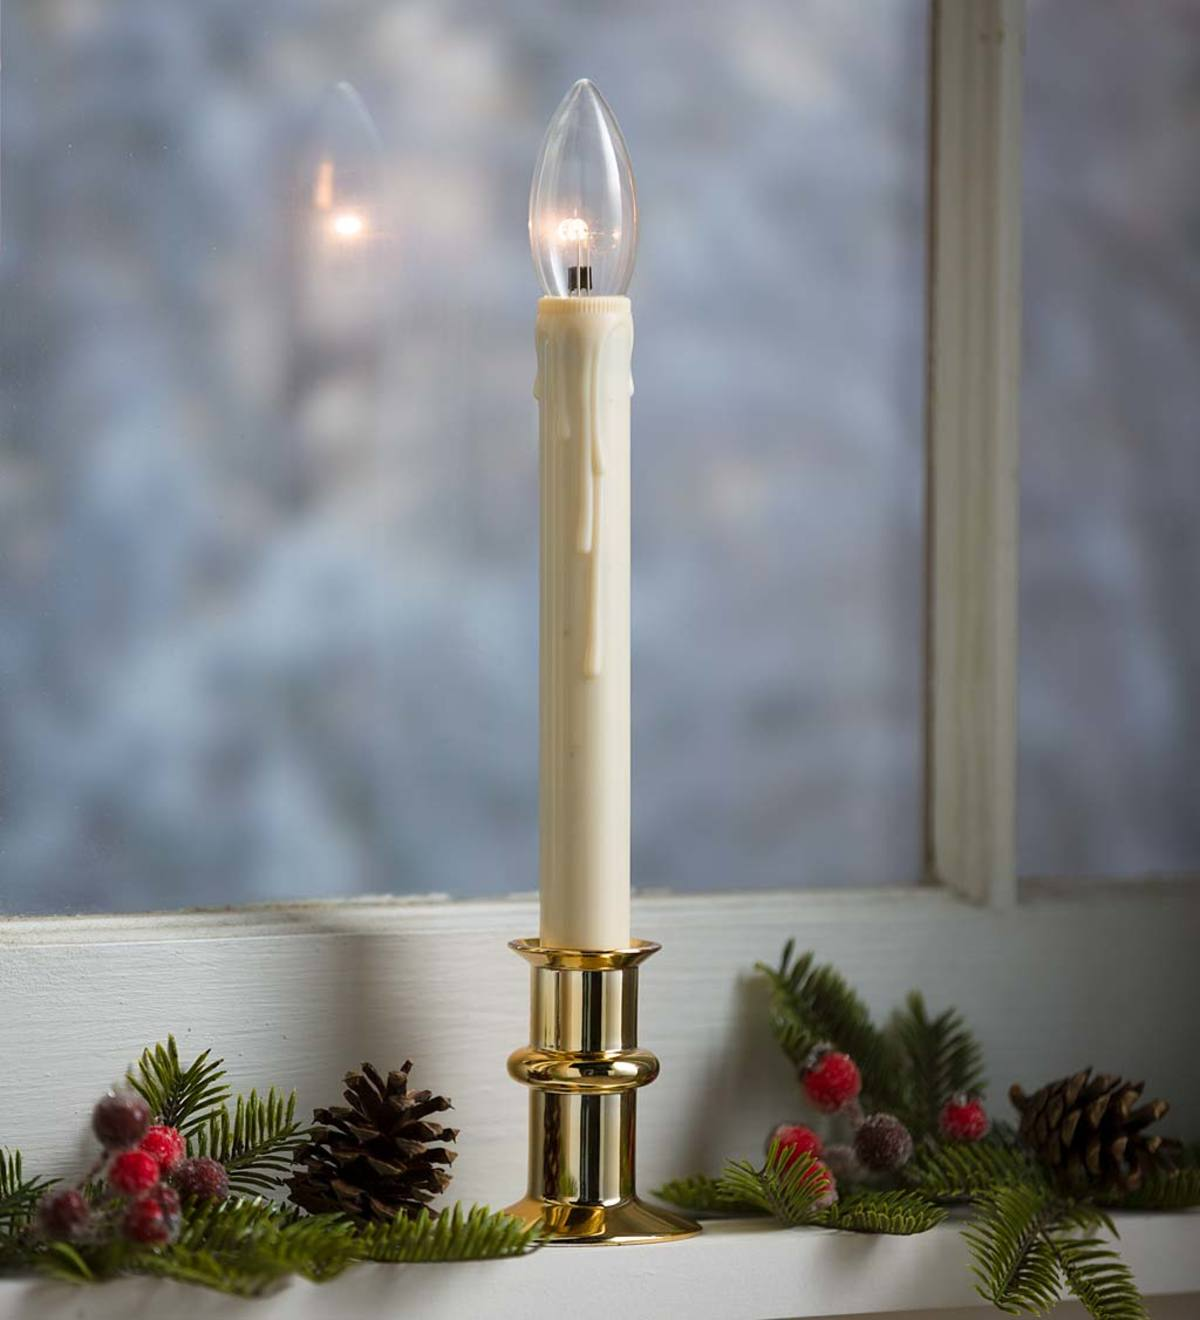 Adjustable Window Hugger Candles with Slim Base and Timer